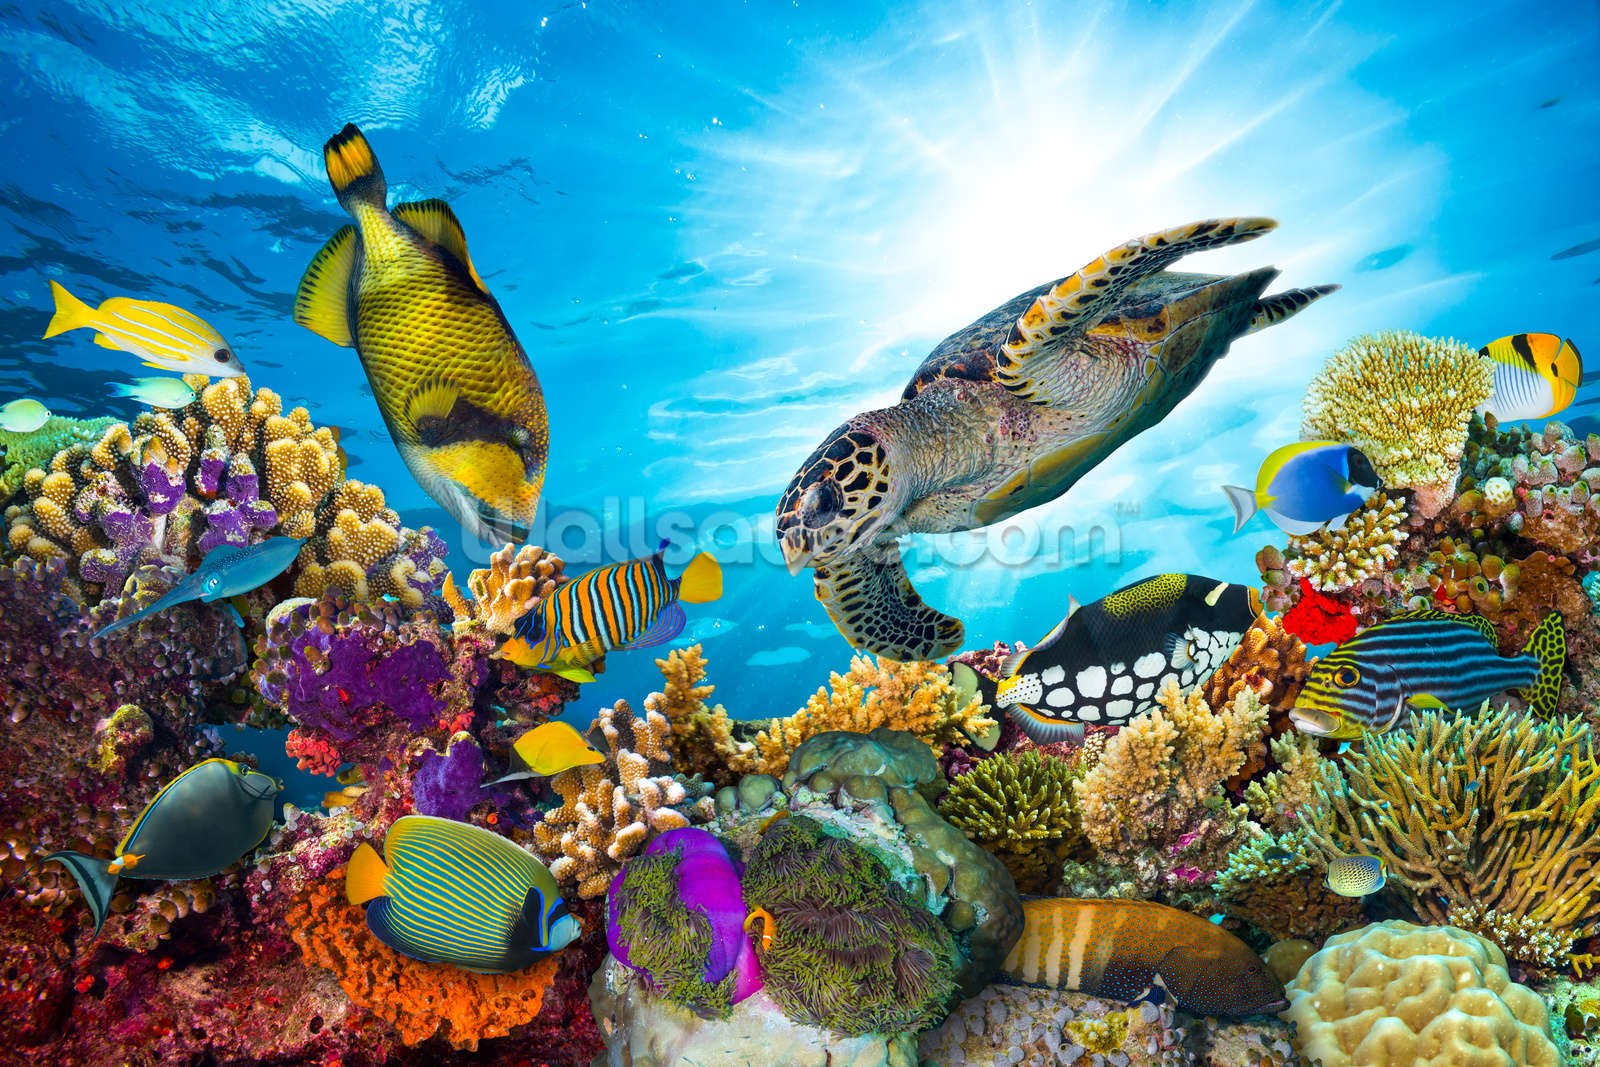 tropical fish wallpaper sea life wall murals wallsauce usa coral reef diversity mural wallpaper